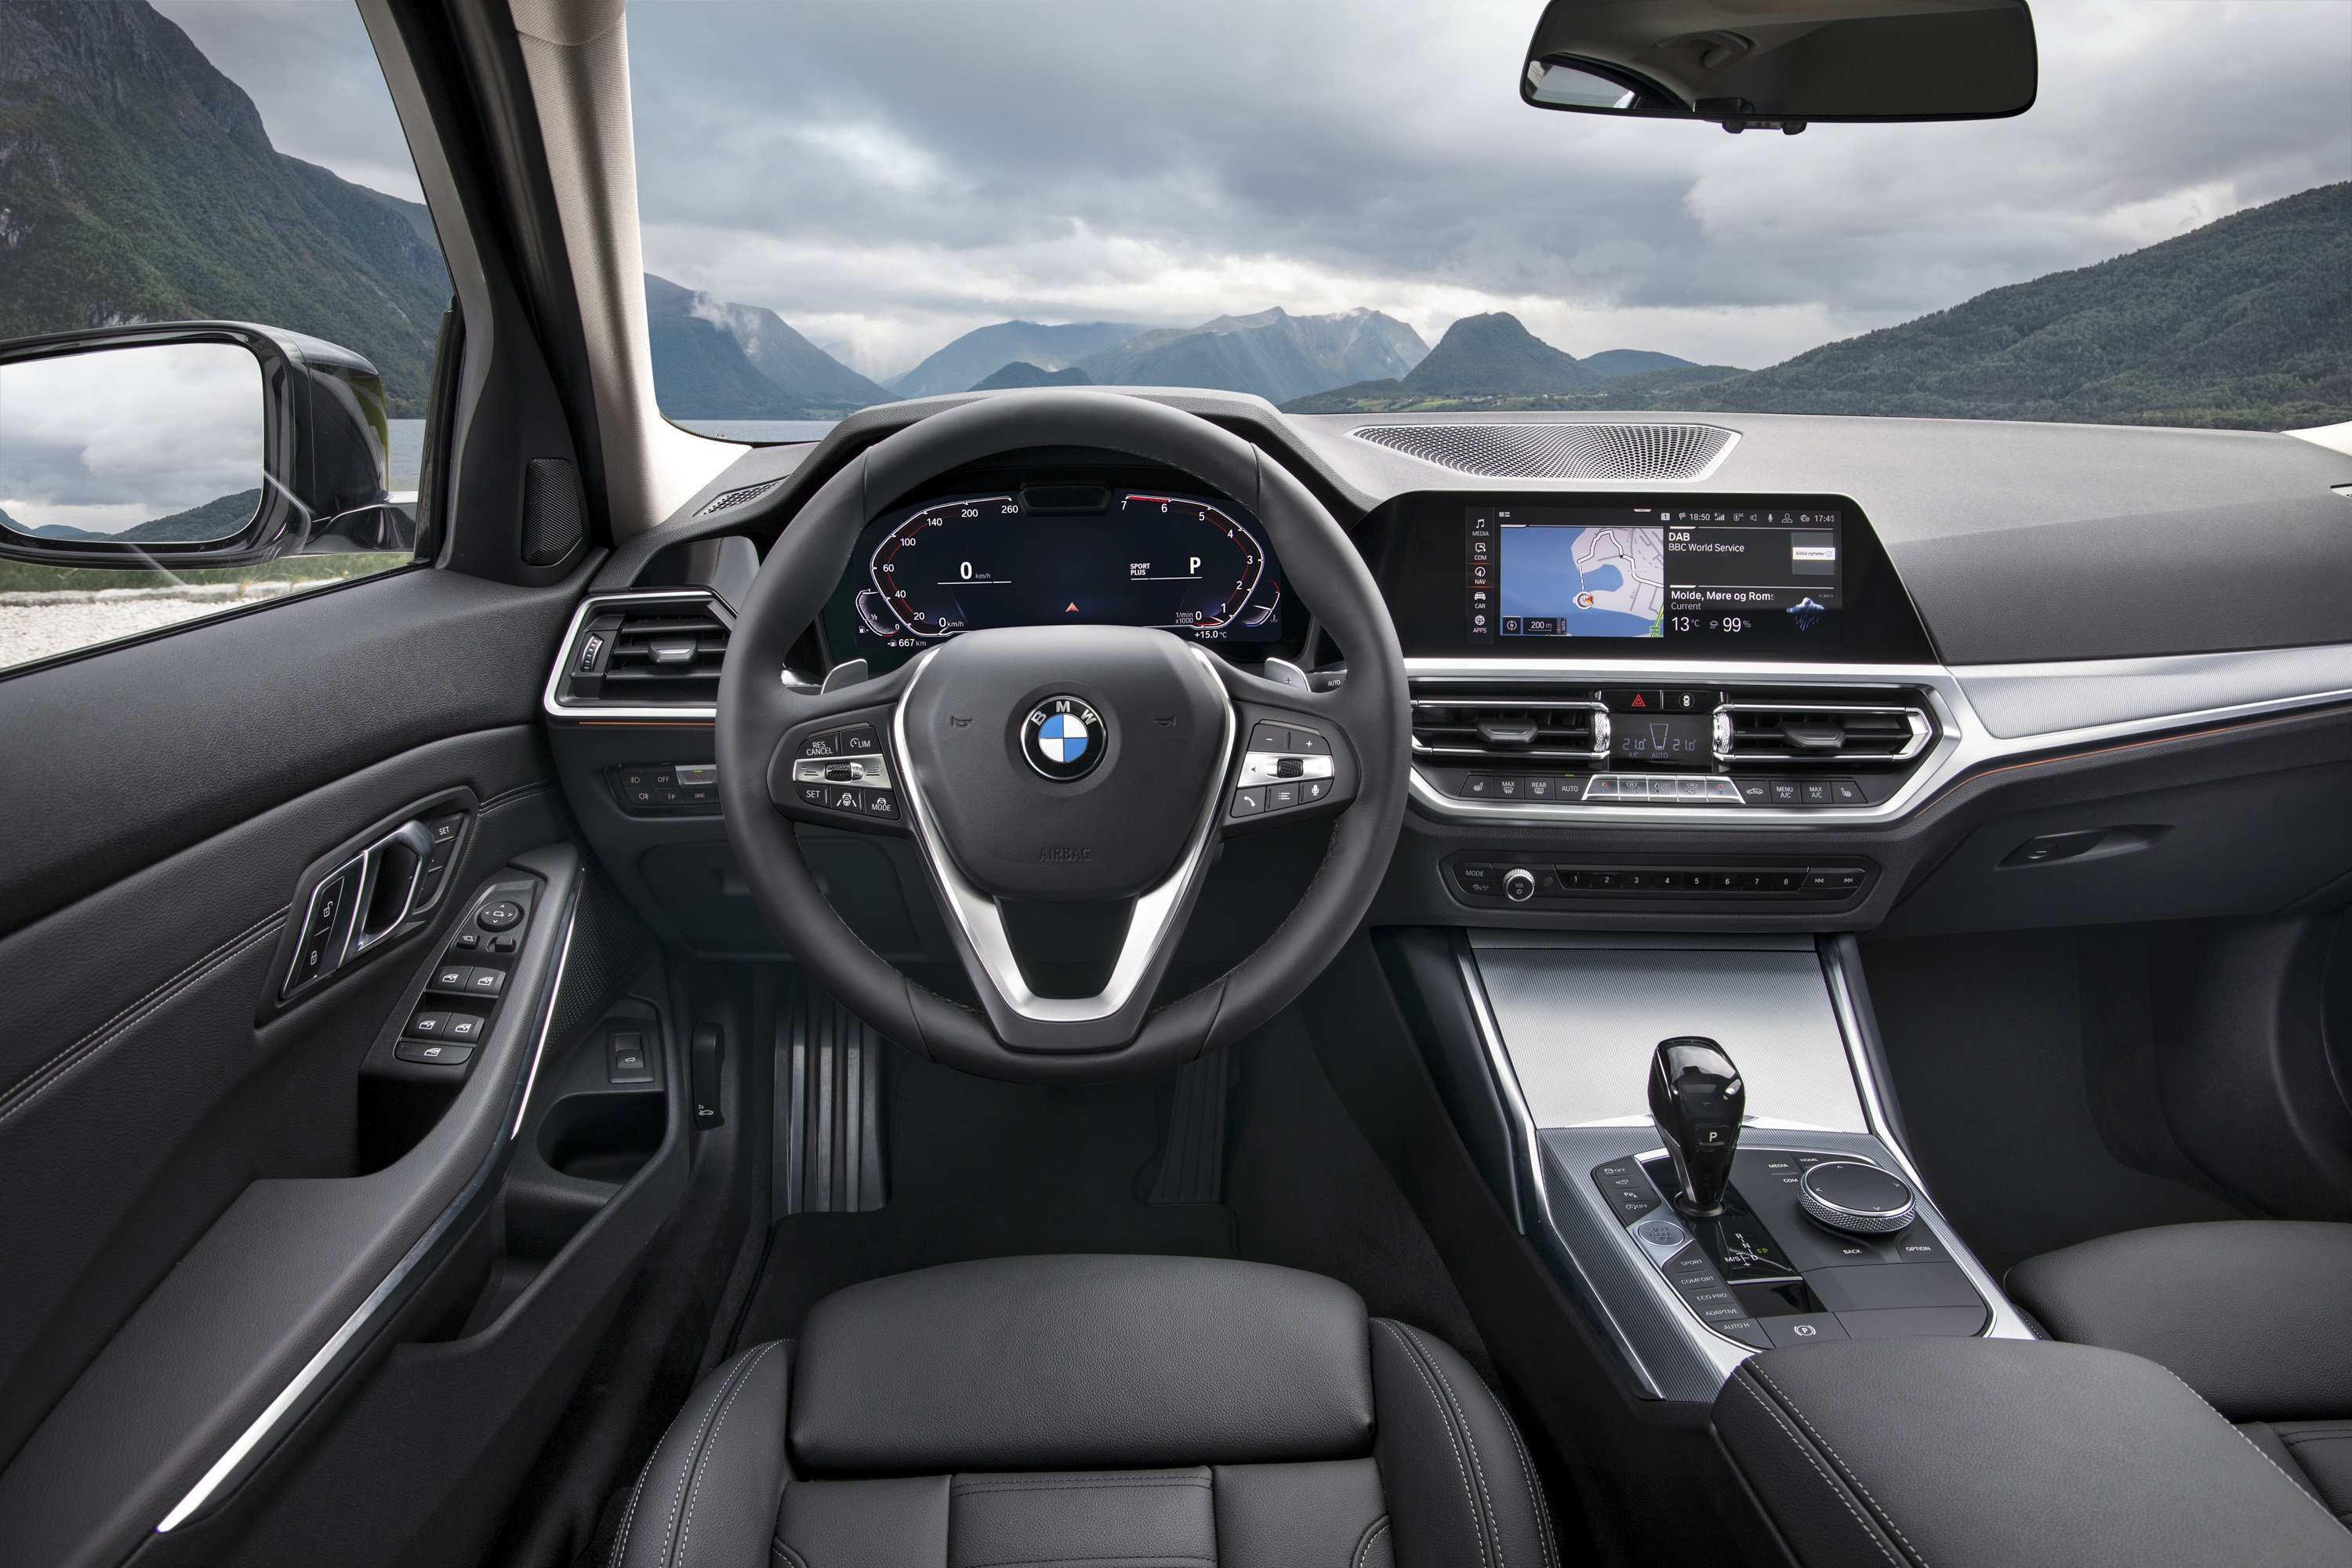 45 Best Review 2019 Bmw 3 Series Manual Transmission Price by 2019 Bmw 3 Series Manual Transmission